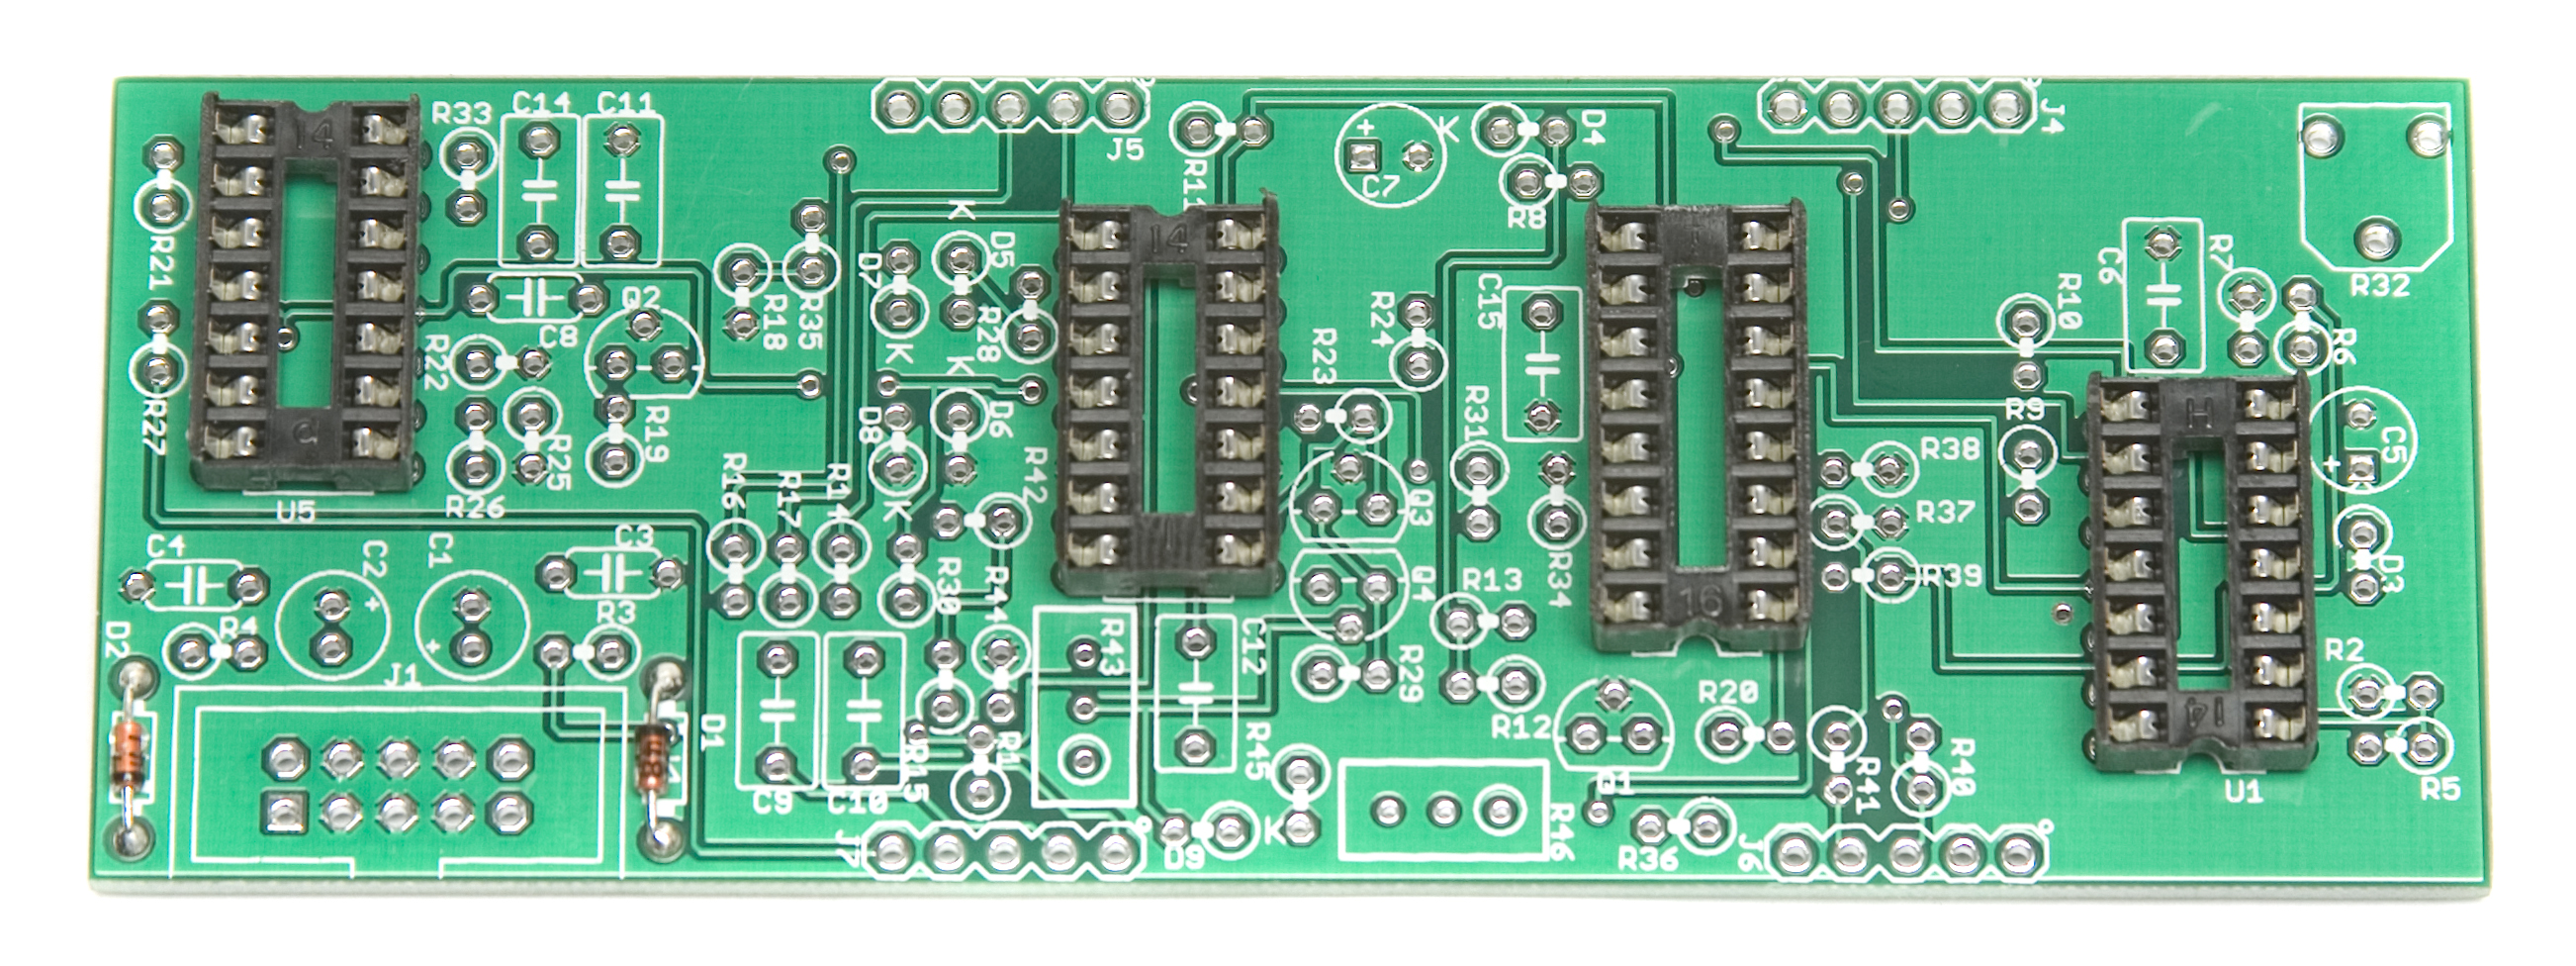 Ds M Assembly Instructions Synthrotek De Luxe Timer With Ic 4093 7808 Sockets Place The